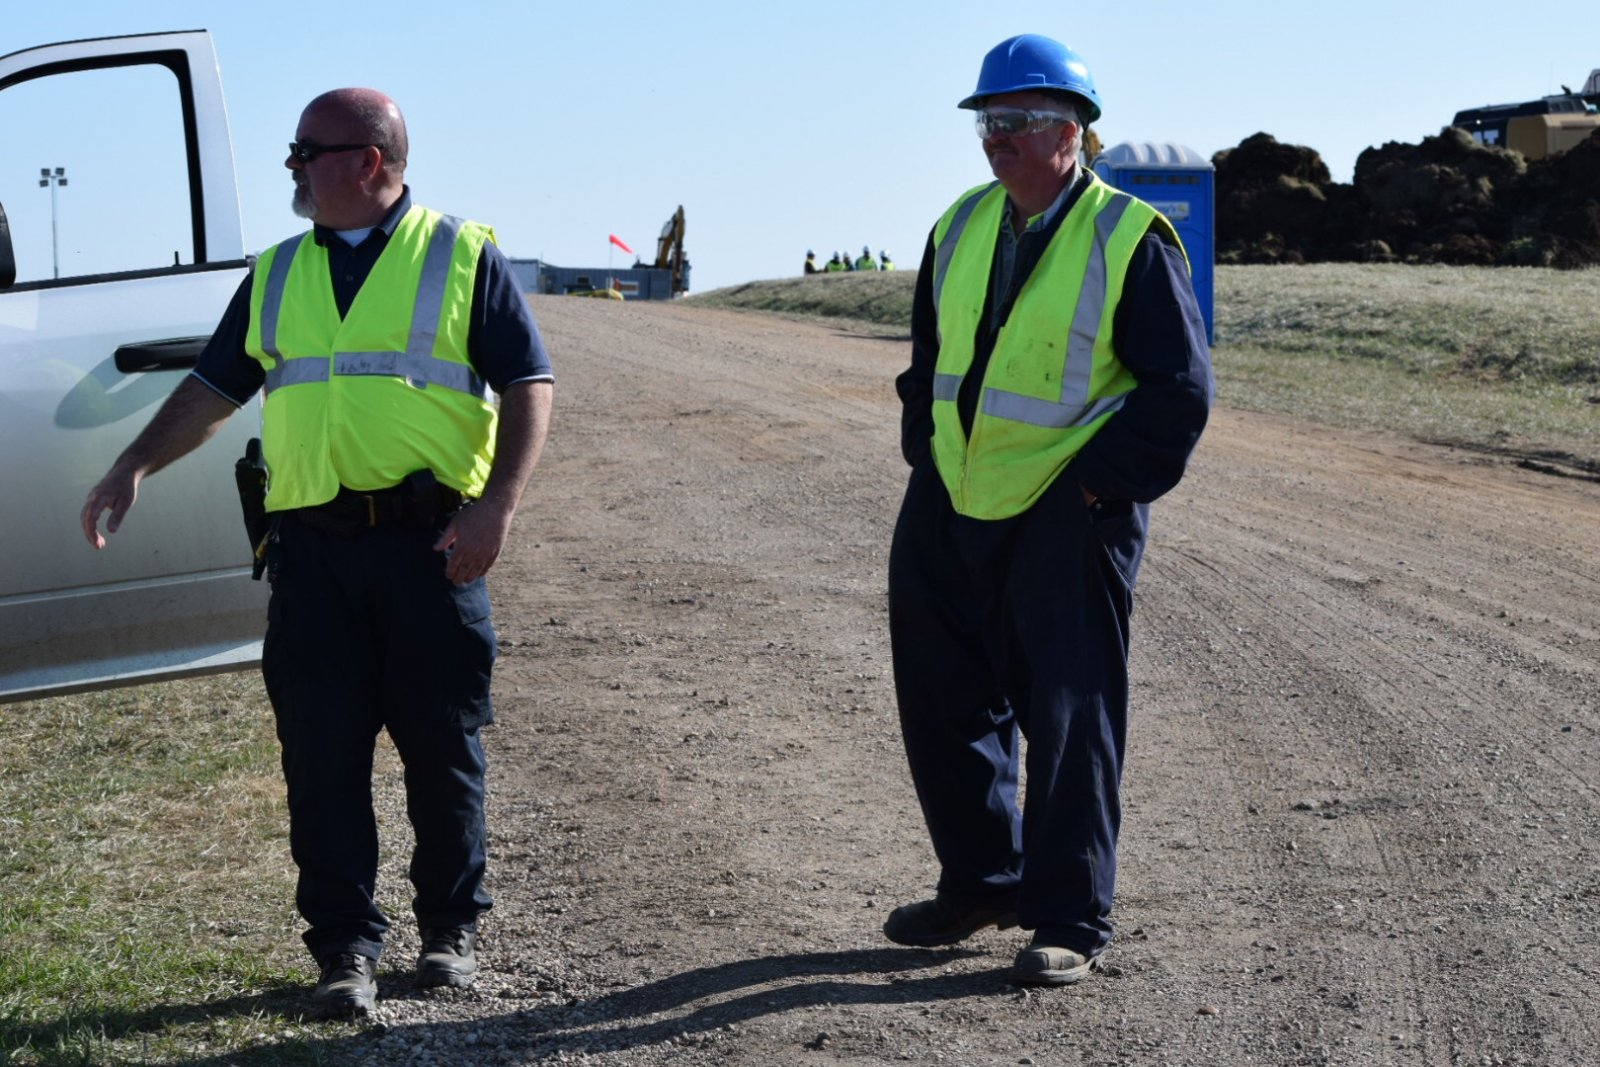 Armed guards stand near TransCanada Keystone spill site